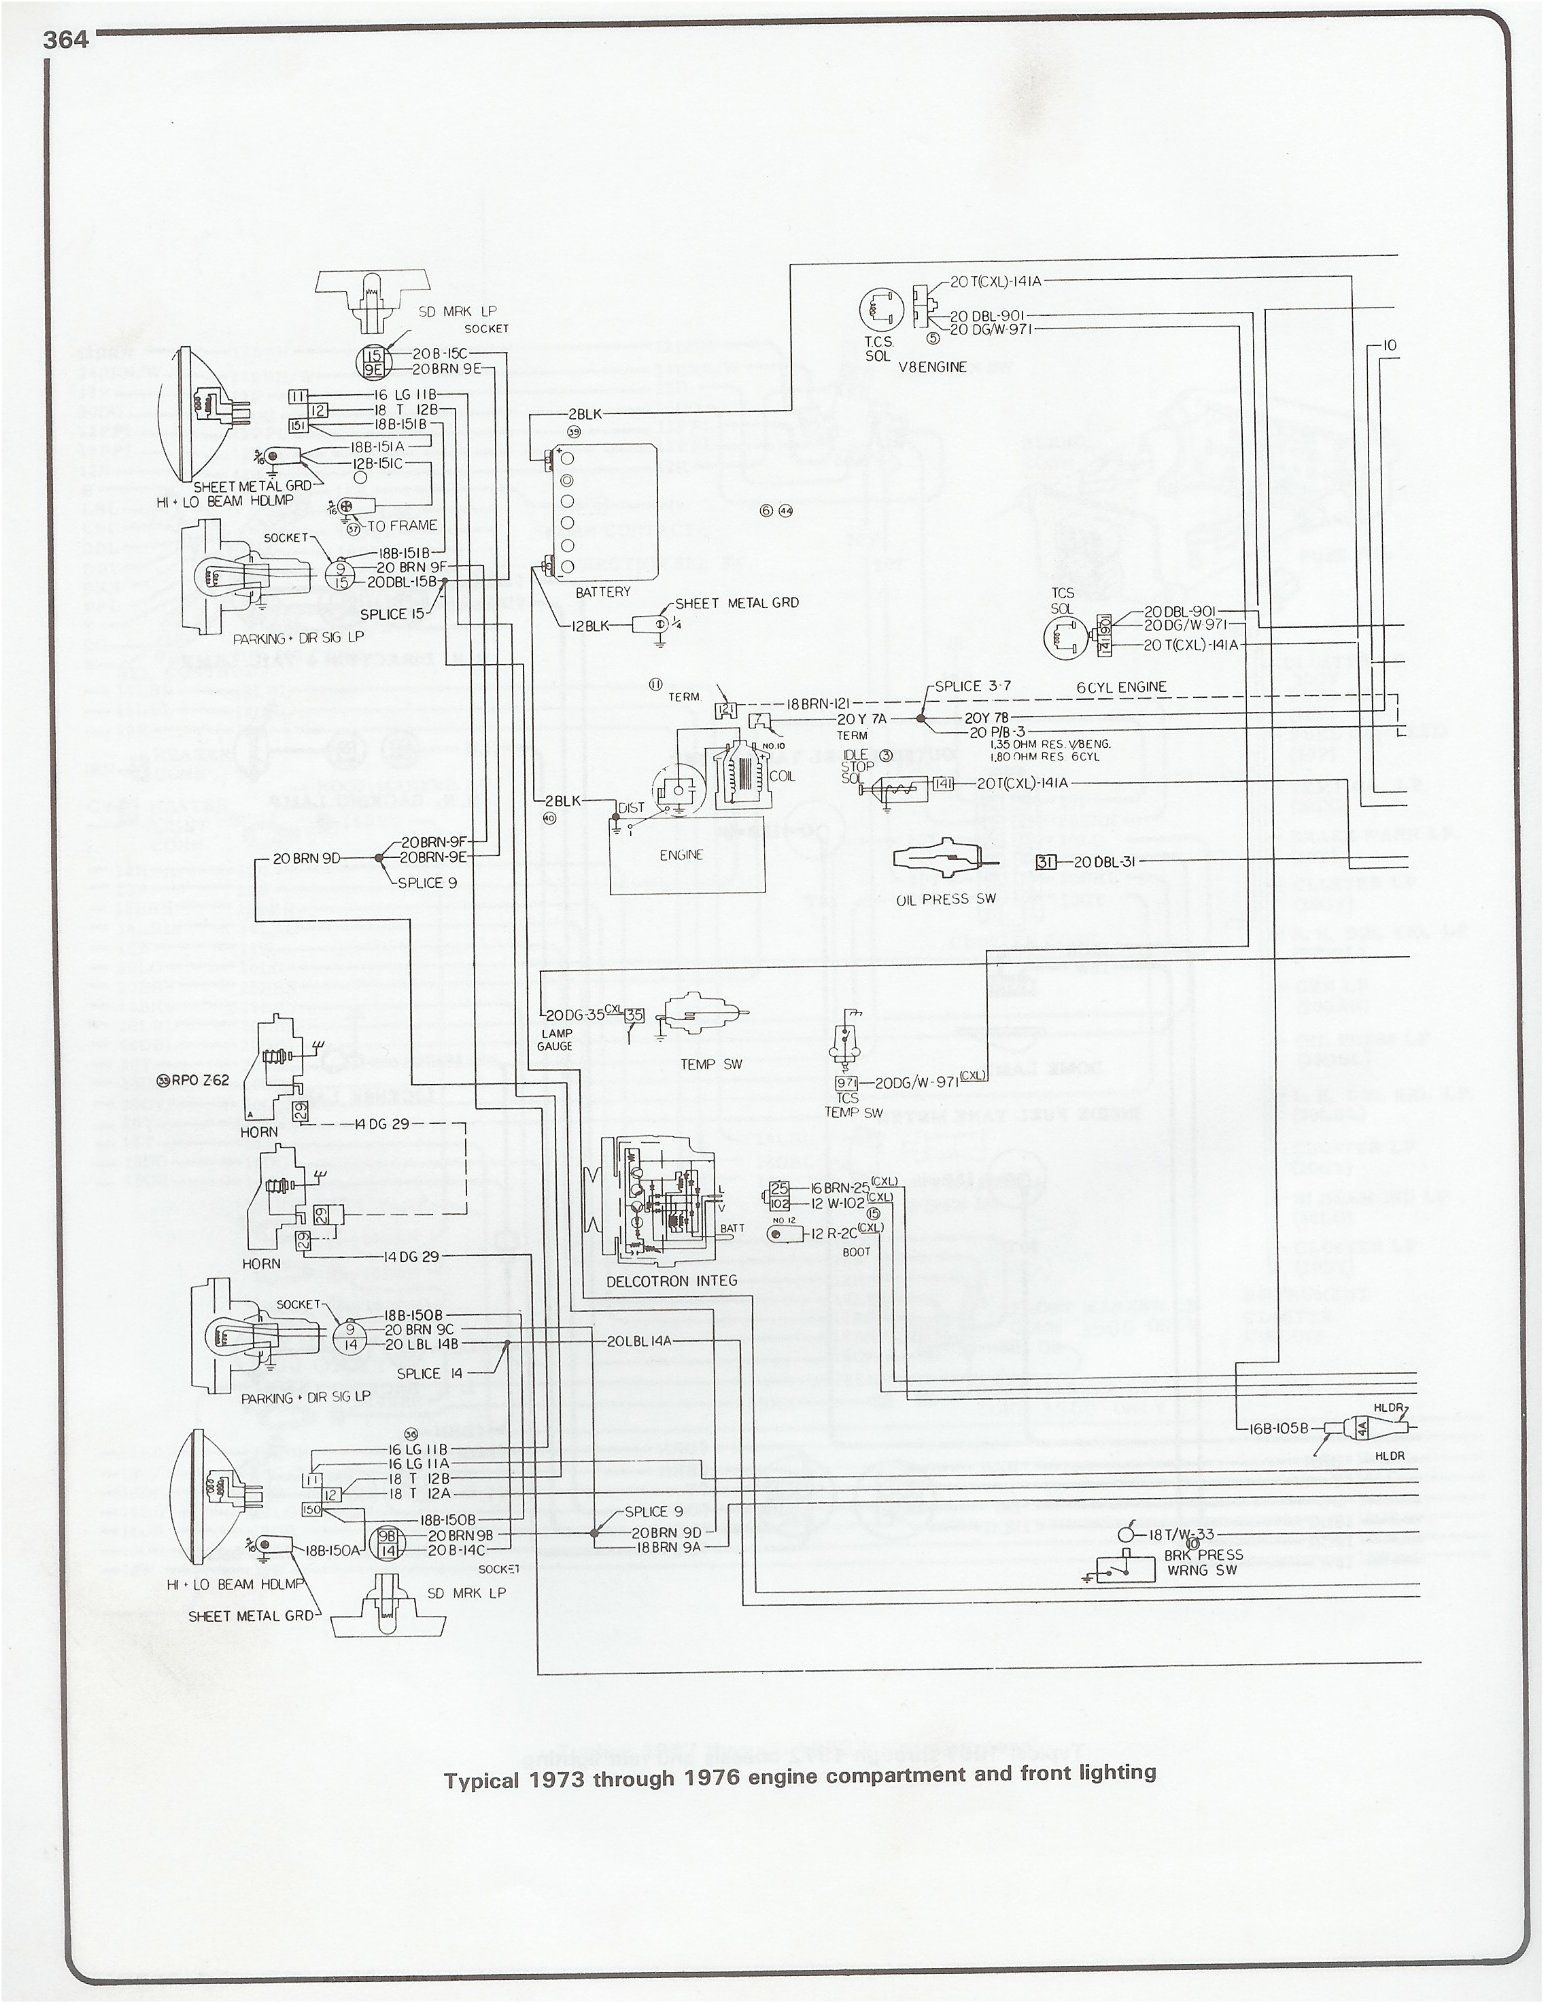 Wiring Diagram 1973 1976 Chevy Pickup 1977 Small Block Motor Truck